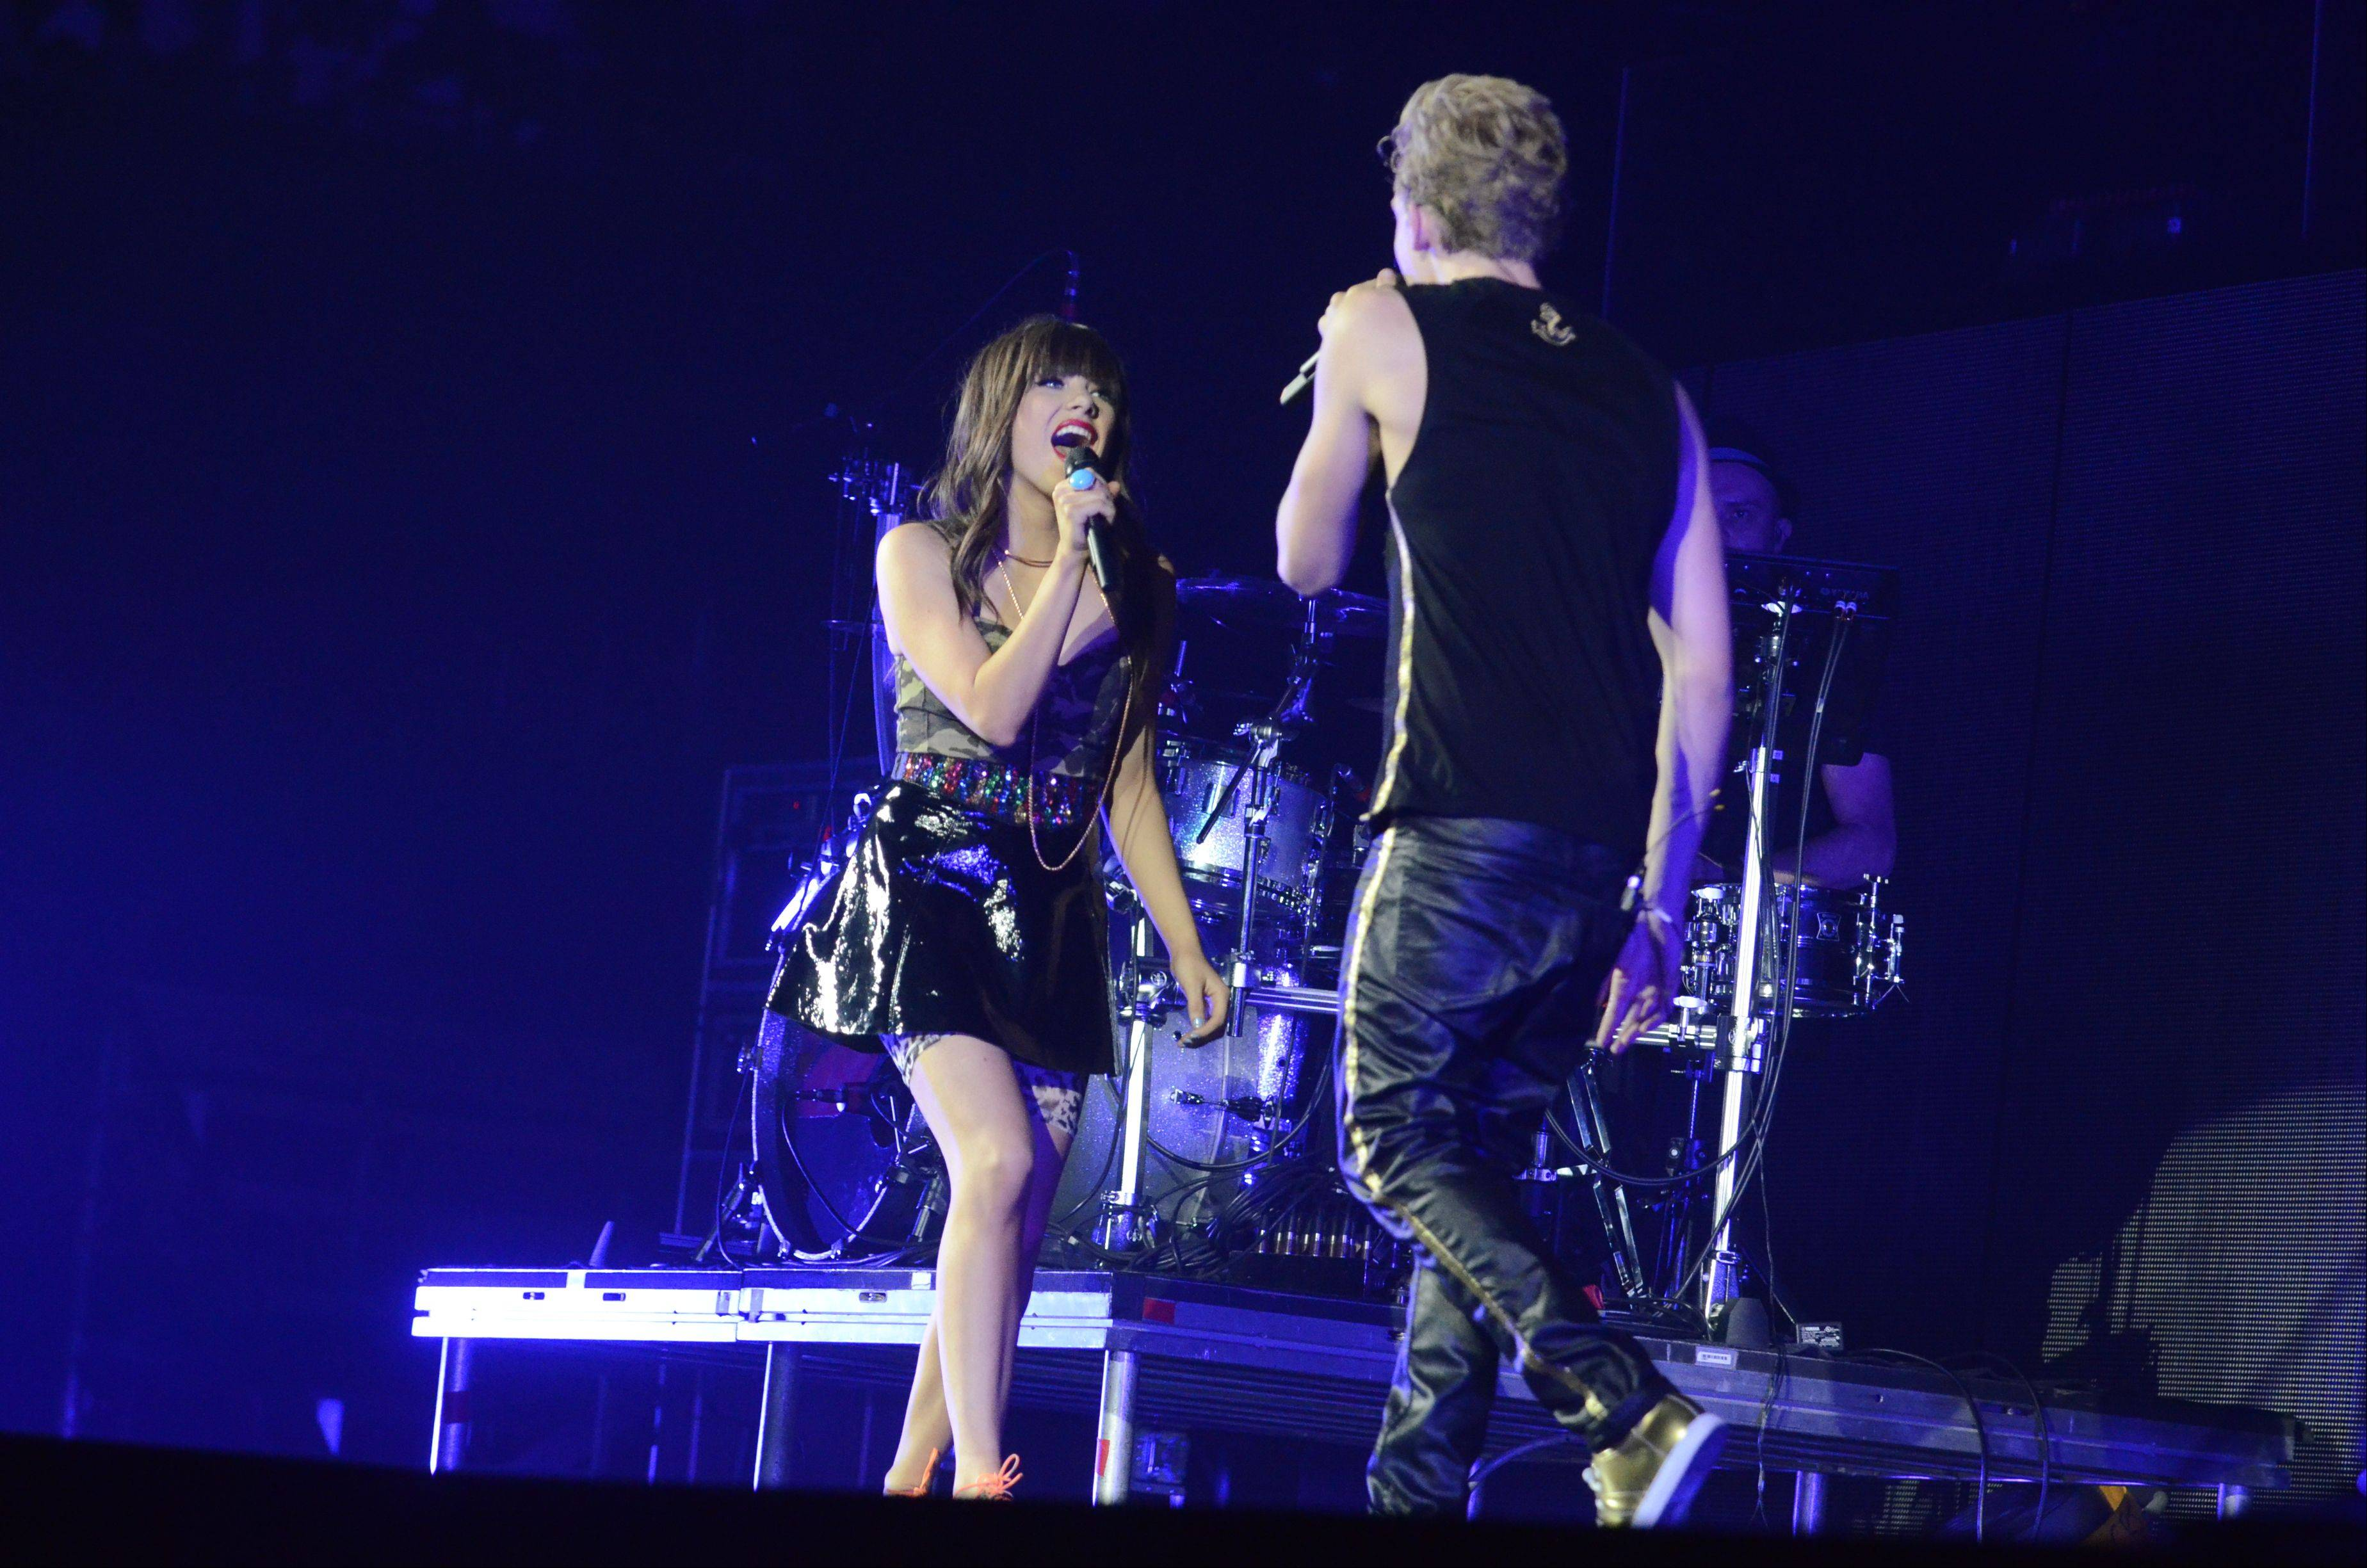 Carly Rae Jepsen and Cody Simpson perform as part of Justin Bieber's Believe tour at the Allstate Arena in Rosemont on Tuesday, October 23, 2012.